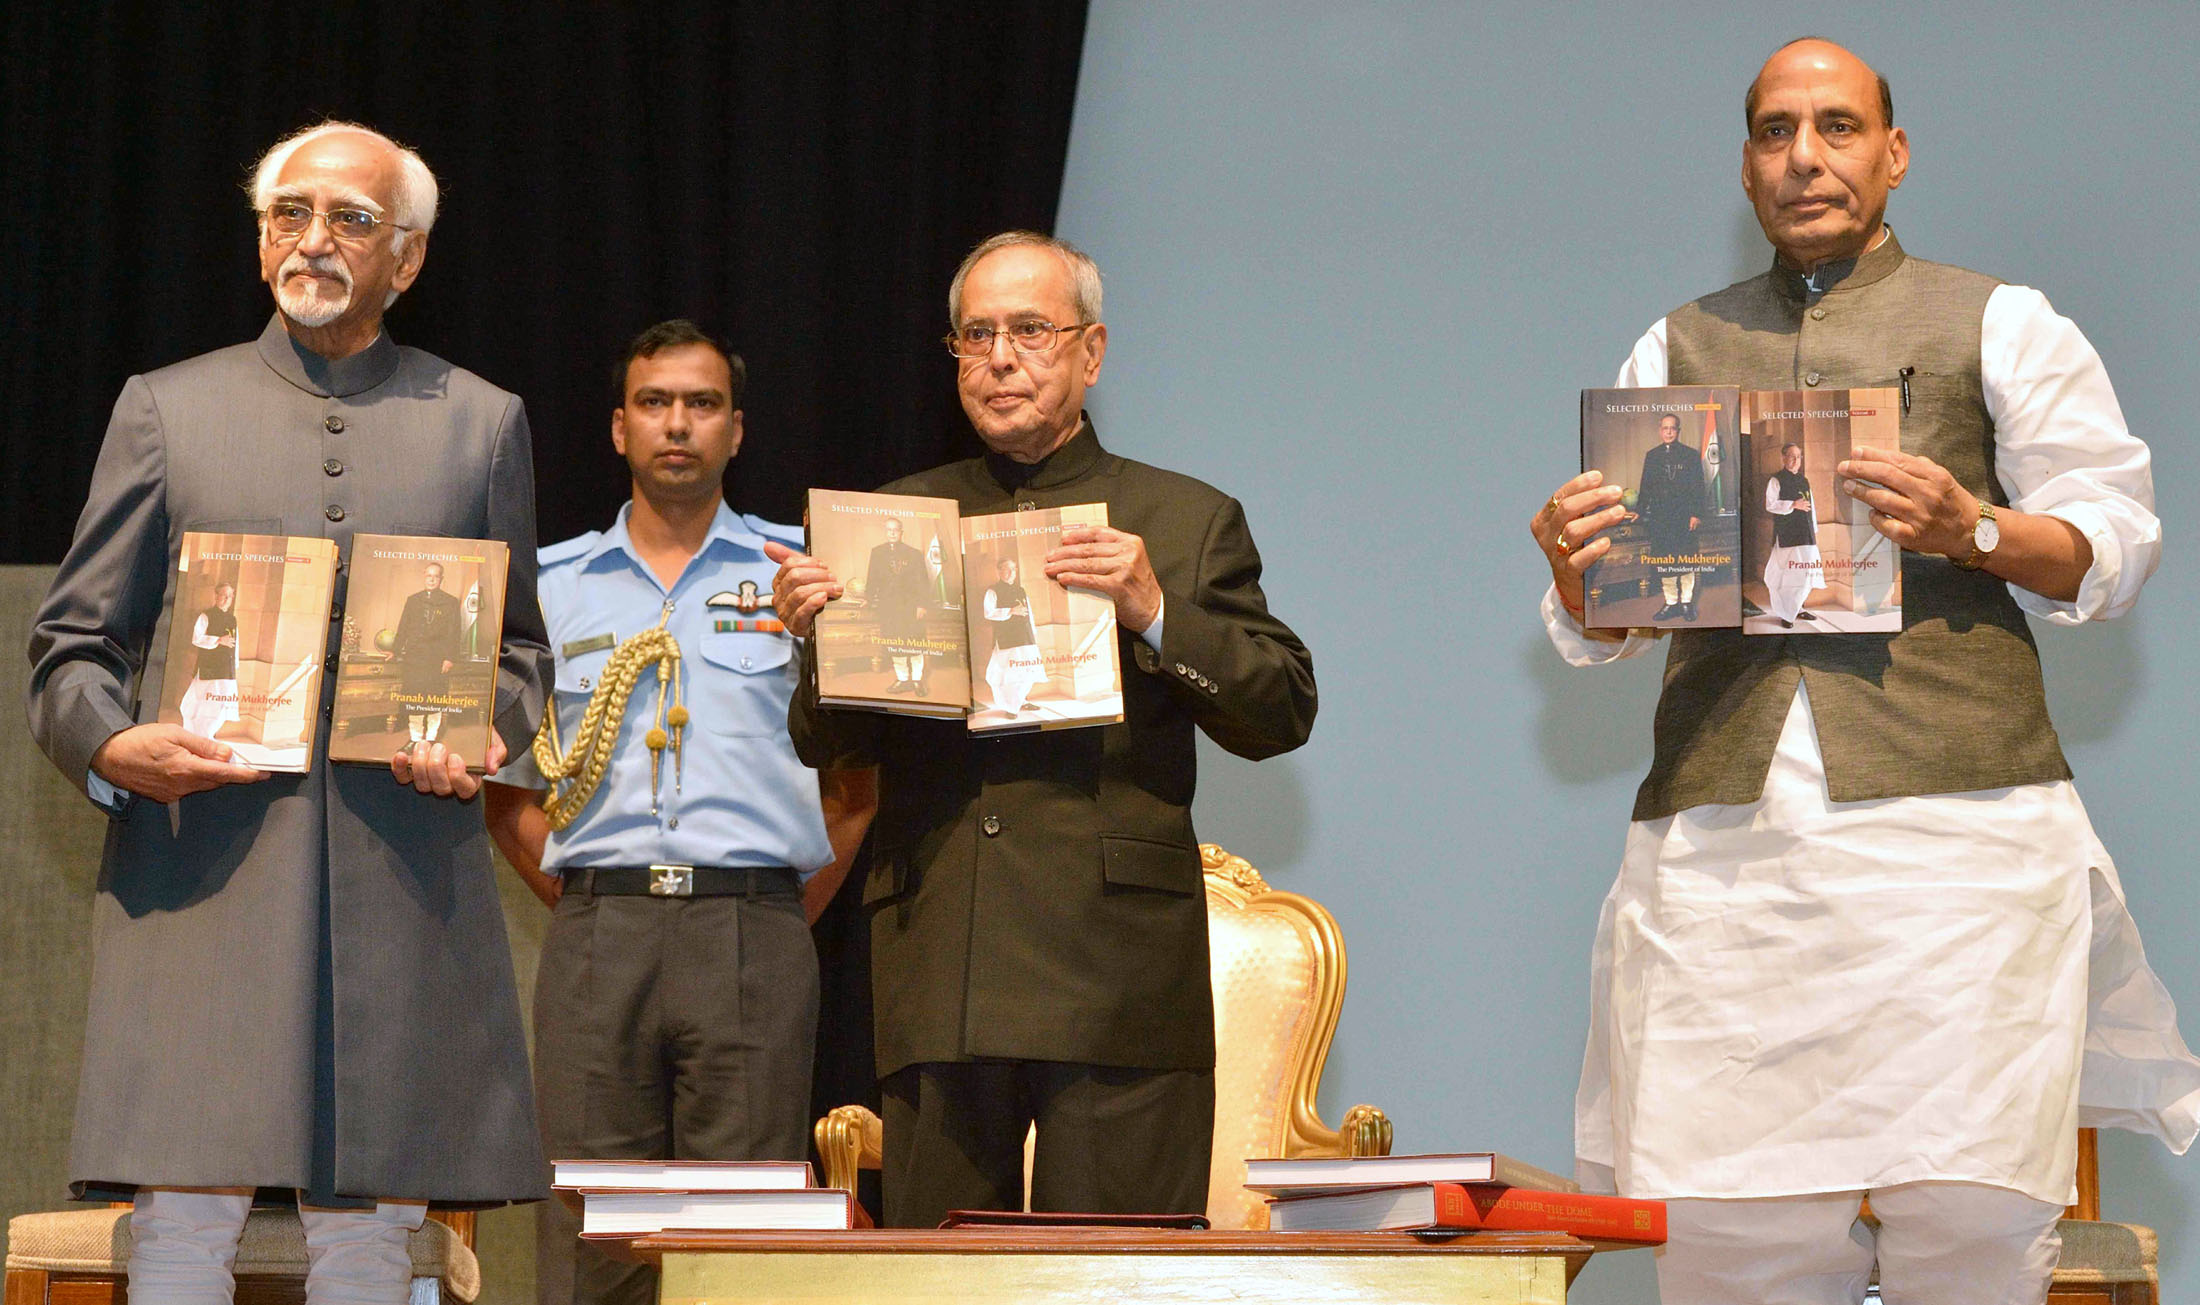 """The President, Shri Pranab Mukherjee and the Union Home Minister, Shri Rajnath Singh during the release of 2 volumes of the book entitled """"Selected Speeches of the President"""", by the Vice President, Shri Mohd. Hamid Ansari, at Rashtrapati Bhavan, in New Delhi on July 24, 2015."""